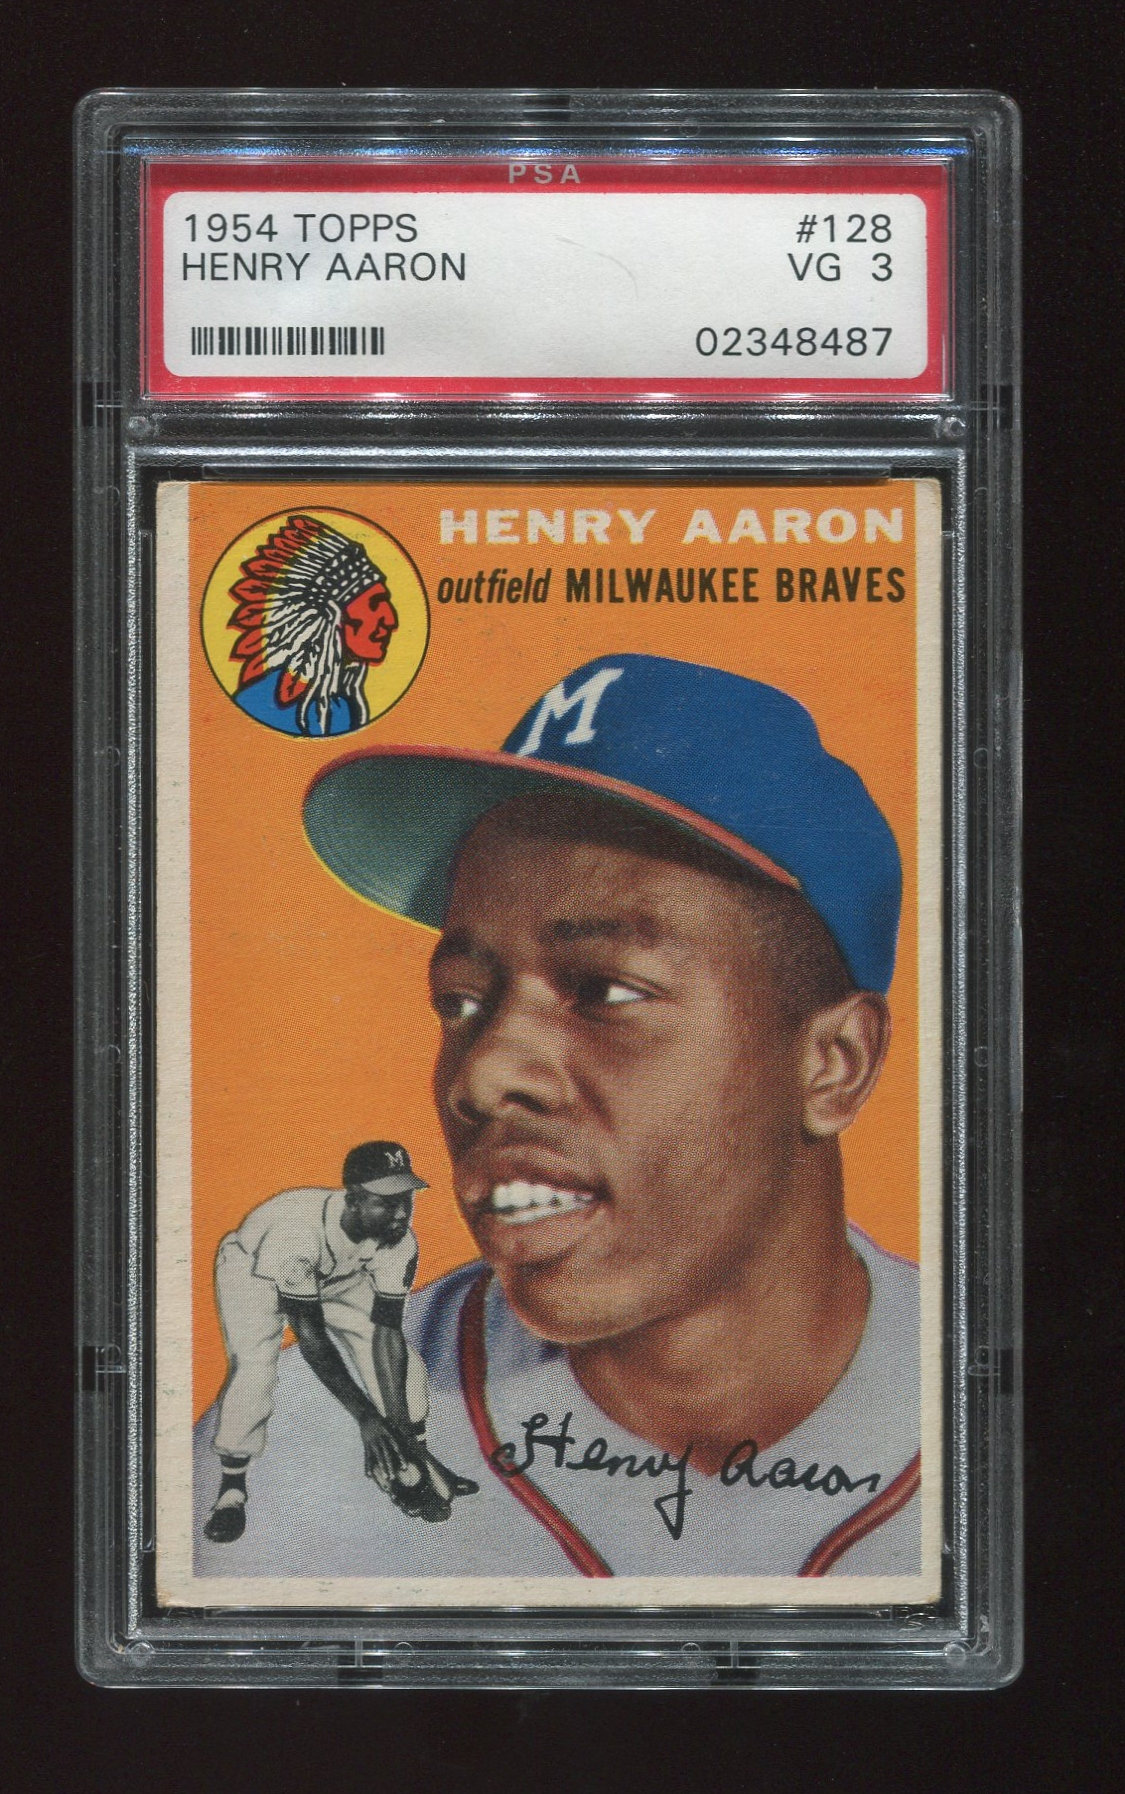 Bought A 1954 Topps Hank Aaron Rookie Card Collectors